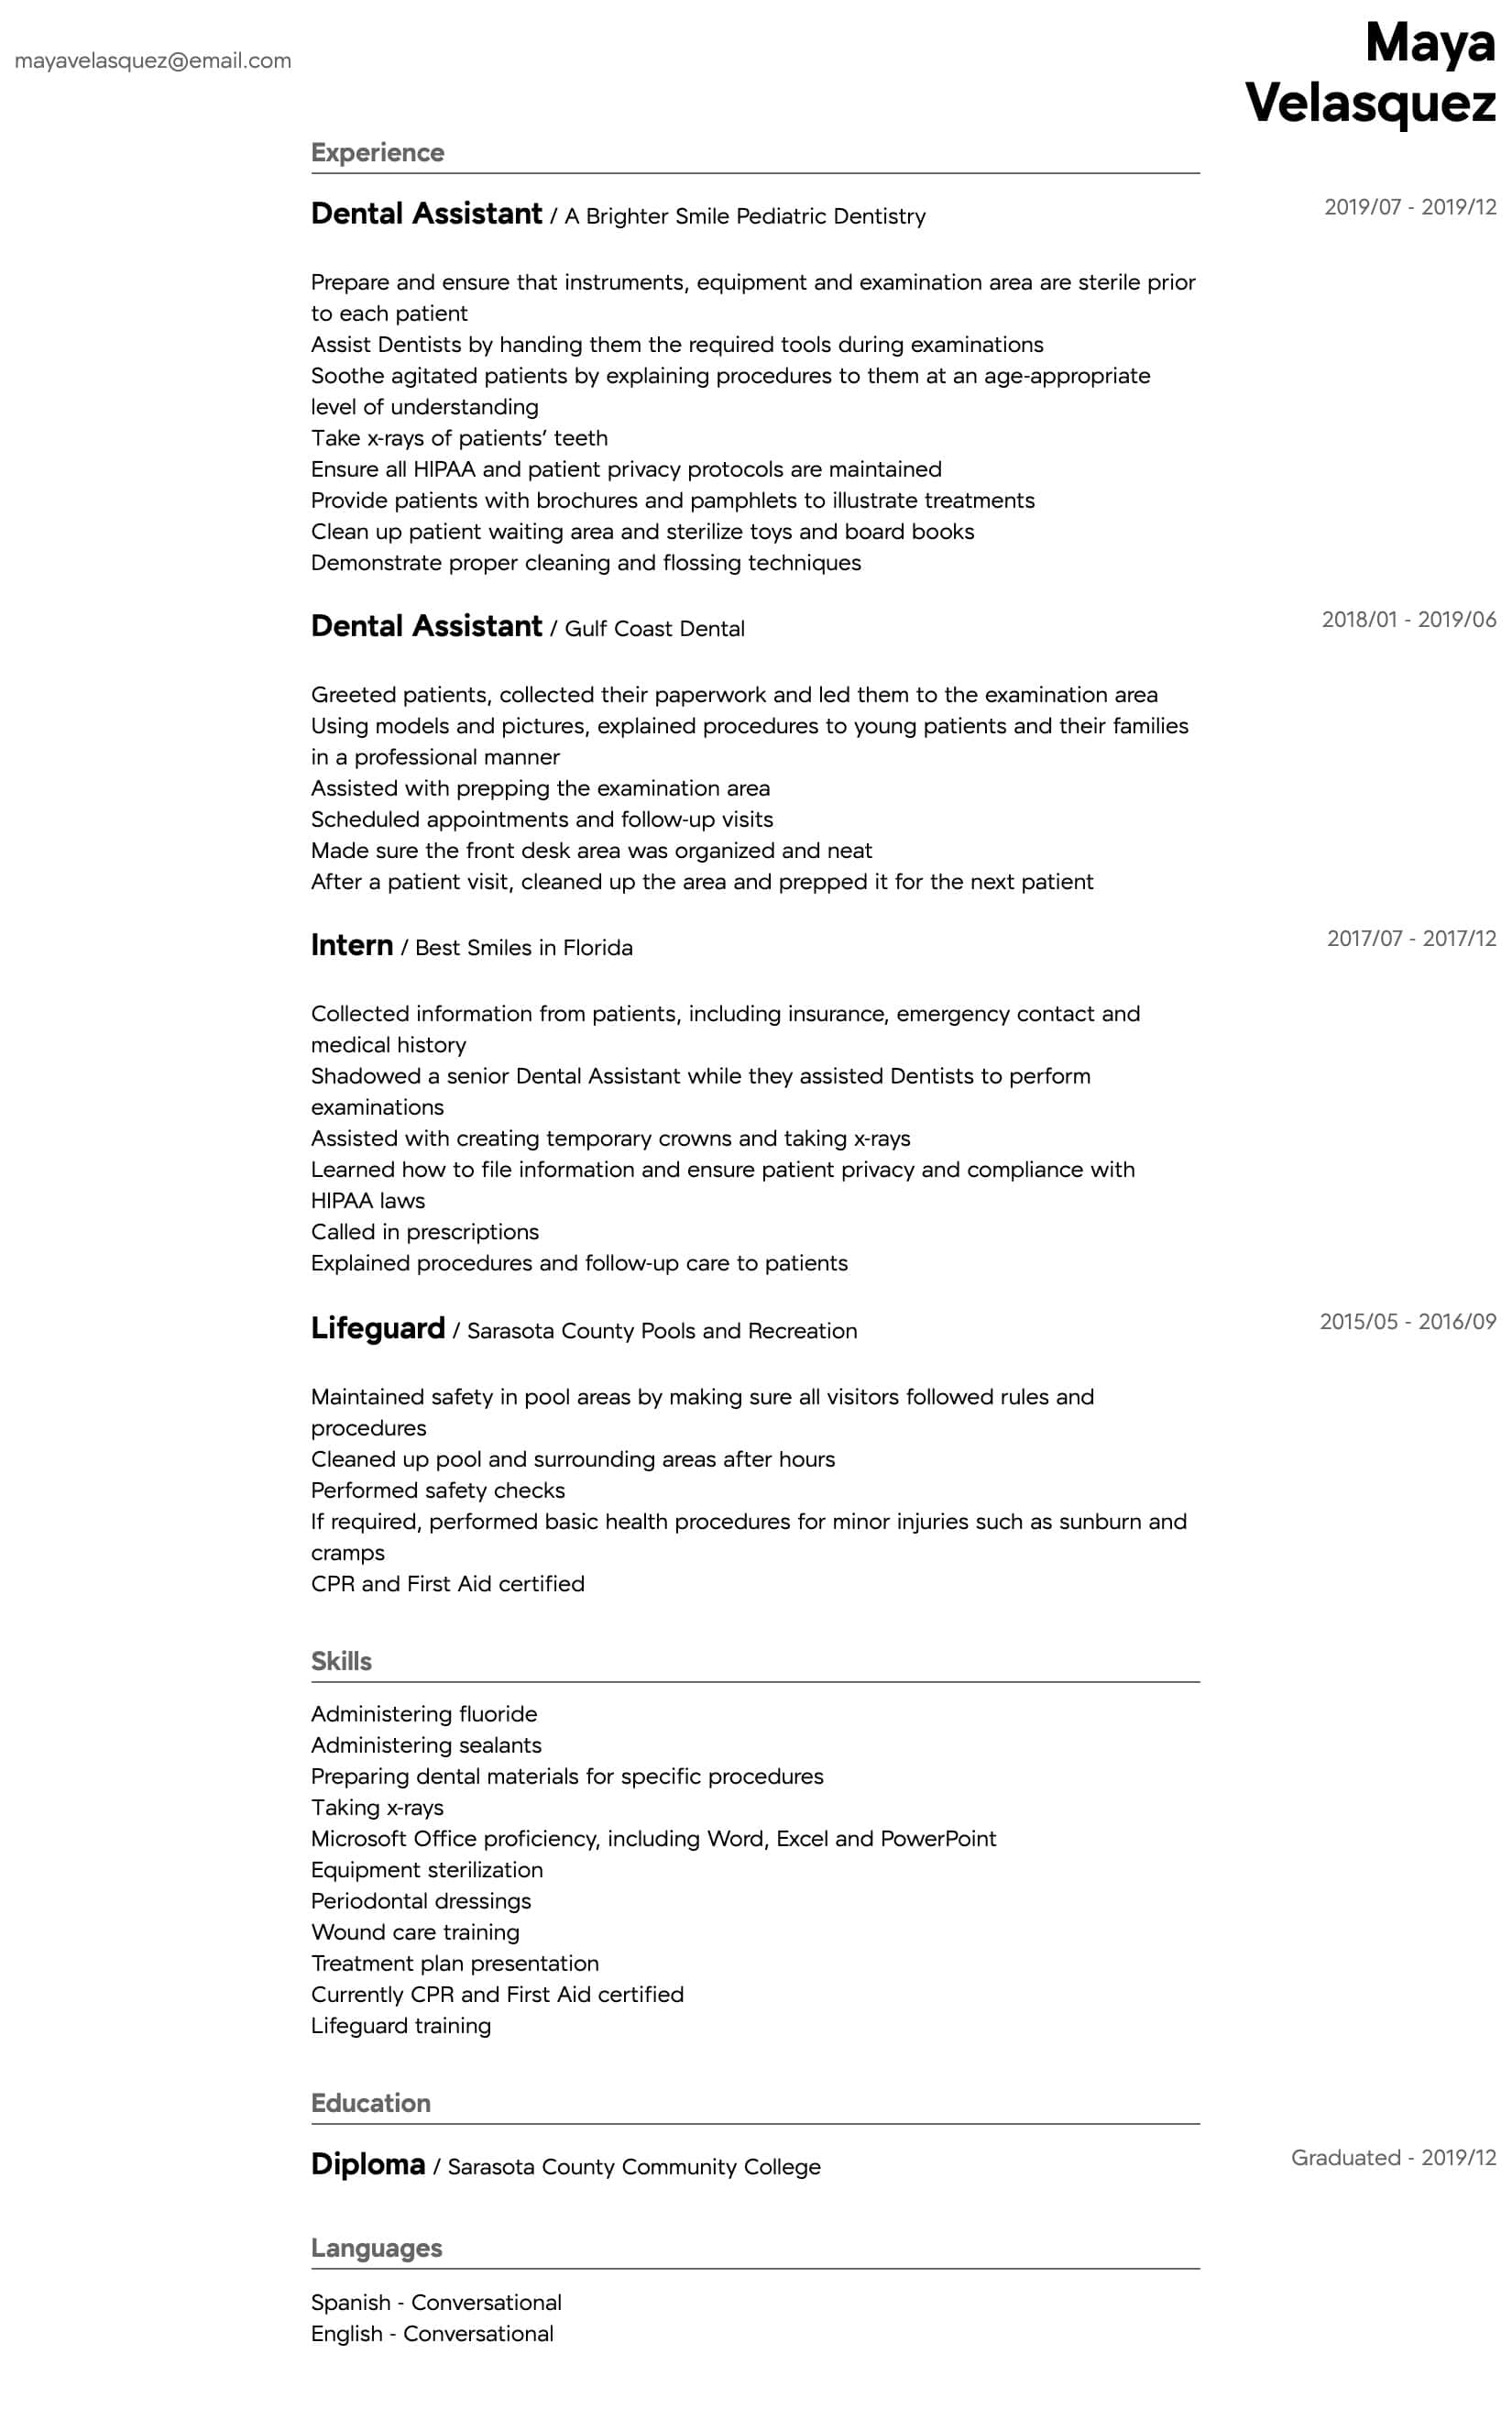 Professional resume examples let jobseekers make the most of their personalized resume by presenting different options for layouts, designs and a variety of content and optimized sections. Dental Assistant Resume Samples All Experience Levels Resume Com Resume Com